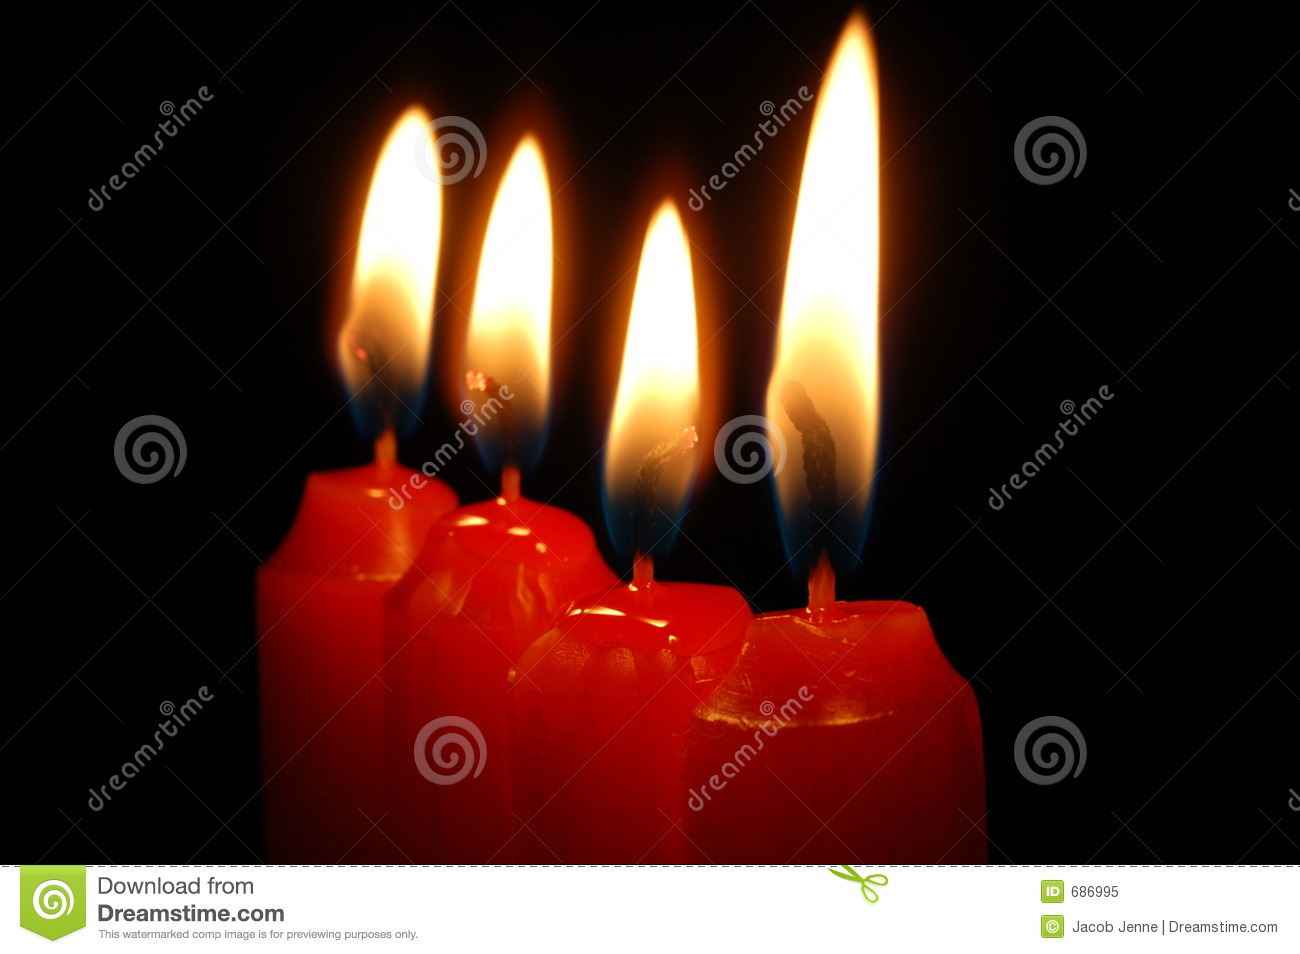 Red Candles Royalty Free Stock Photo - Image: 686995